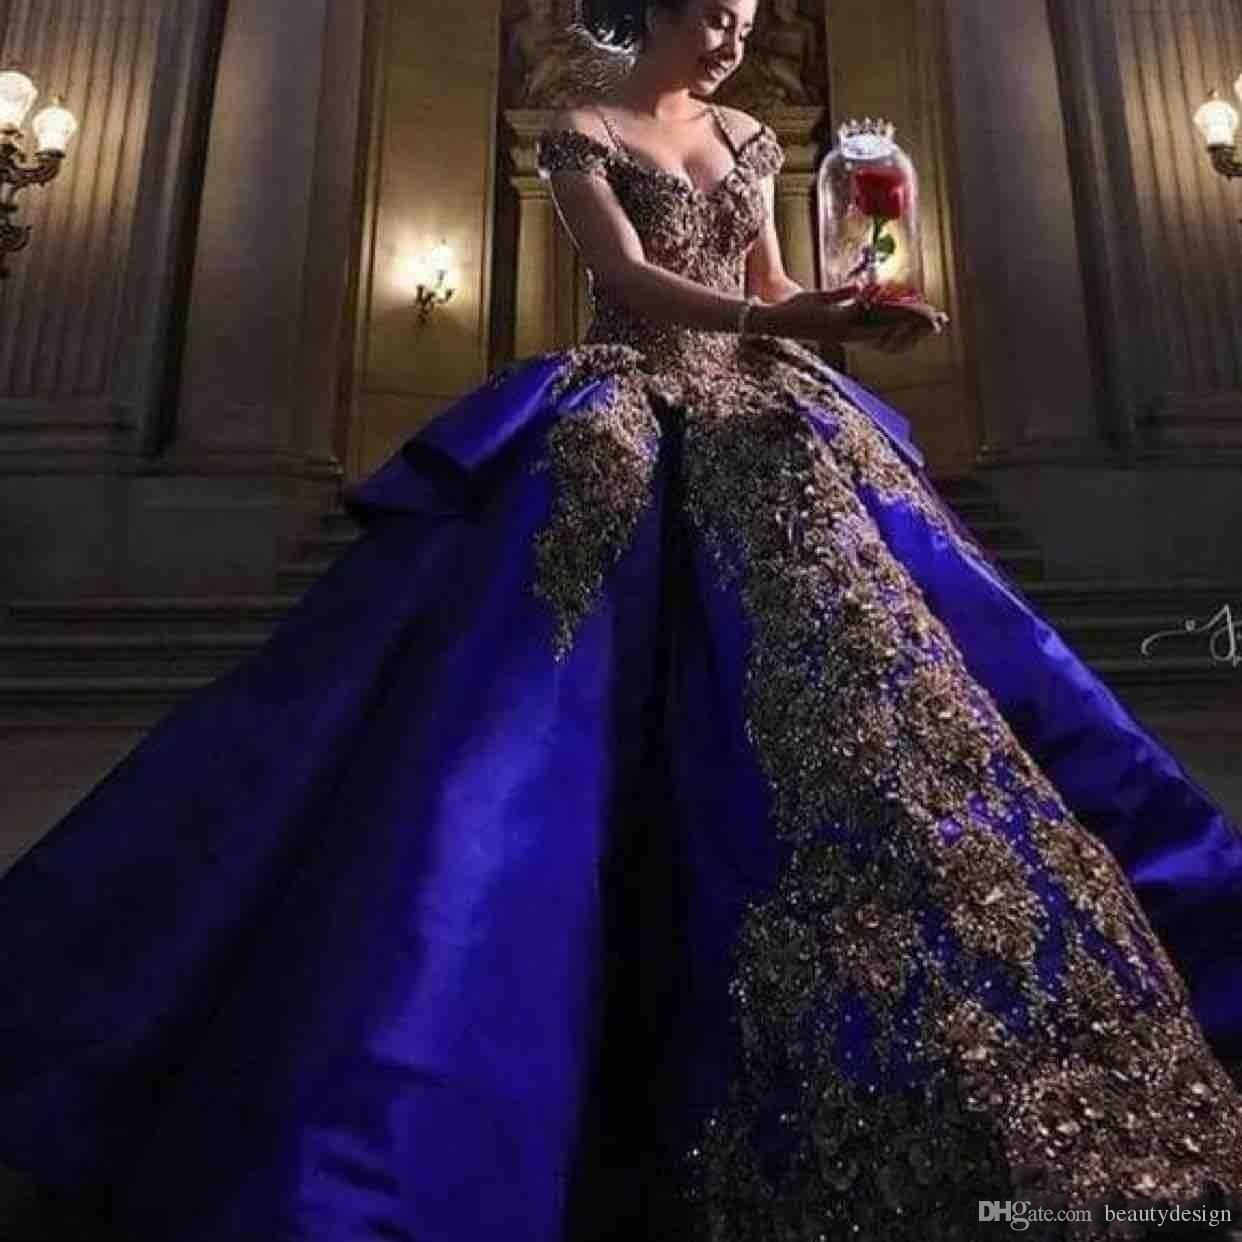 2020 Luxury Gold Embroidery Appliques Royal Blue Quinceanera Dresses Ball Gown Sweet 16 Dress Off Shoulder Masquerade Pageant Prom Gown